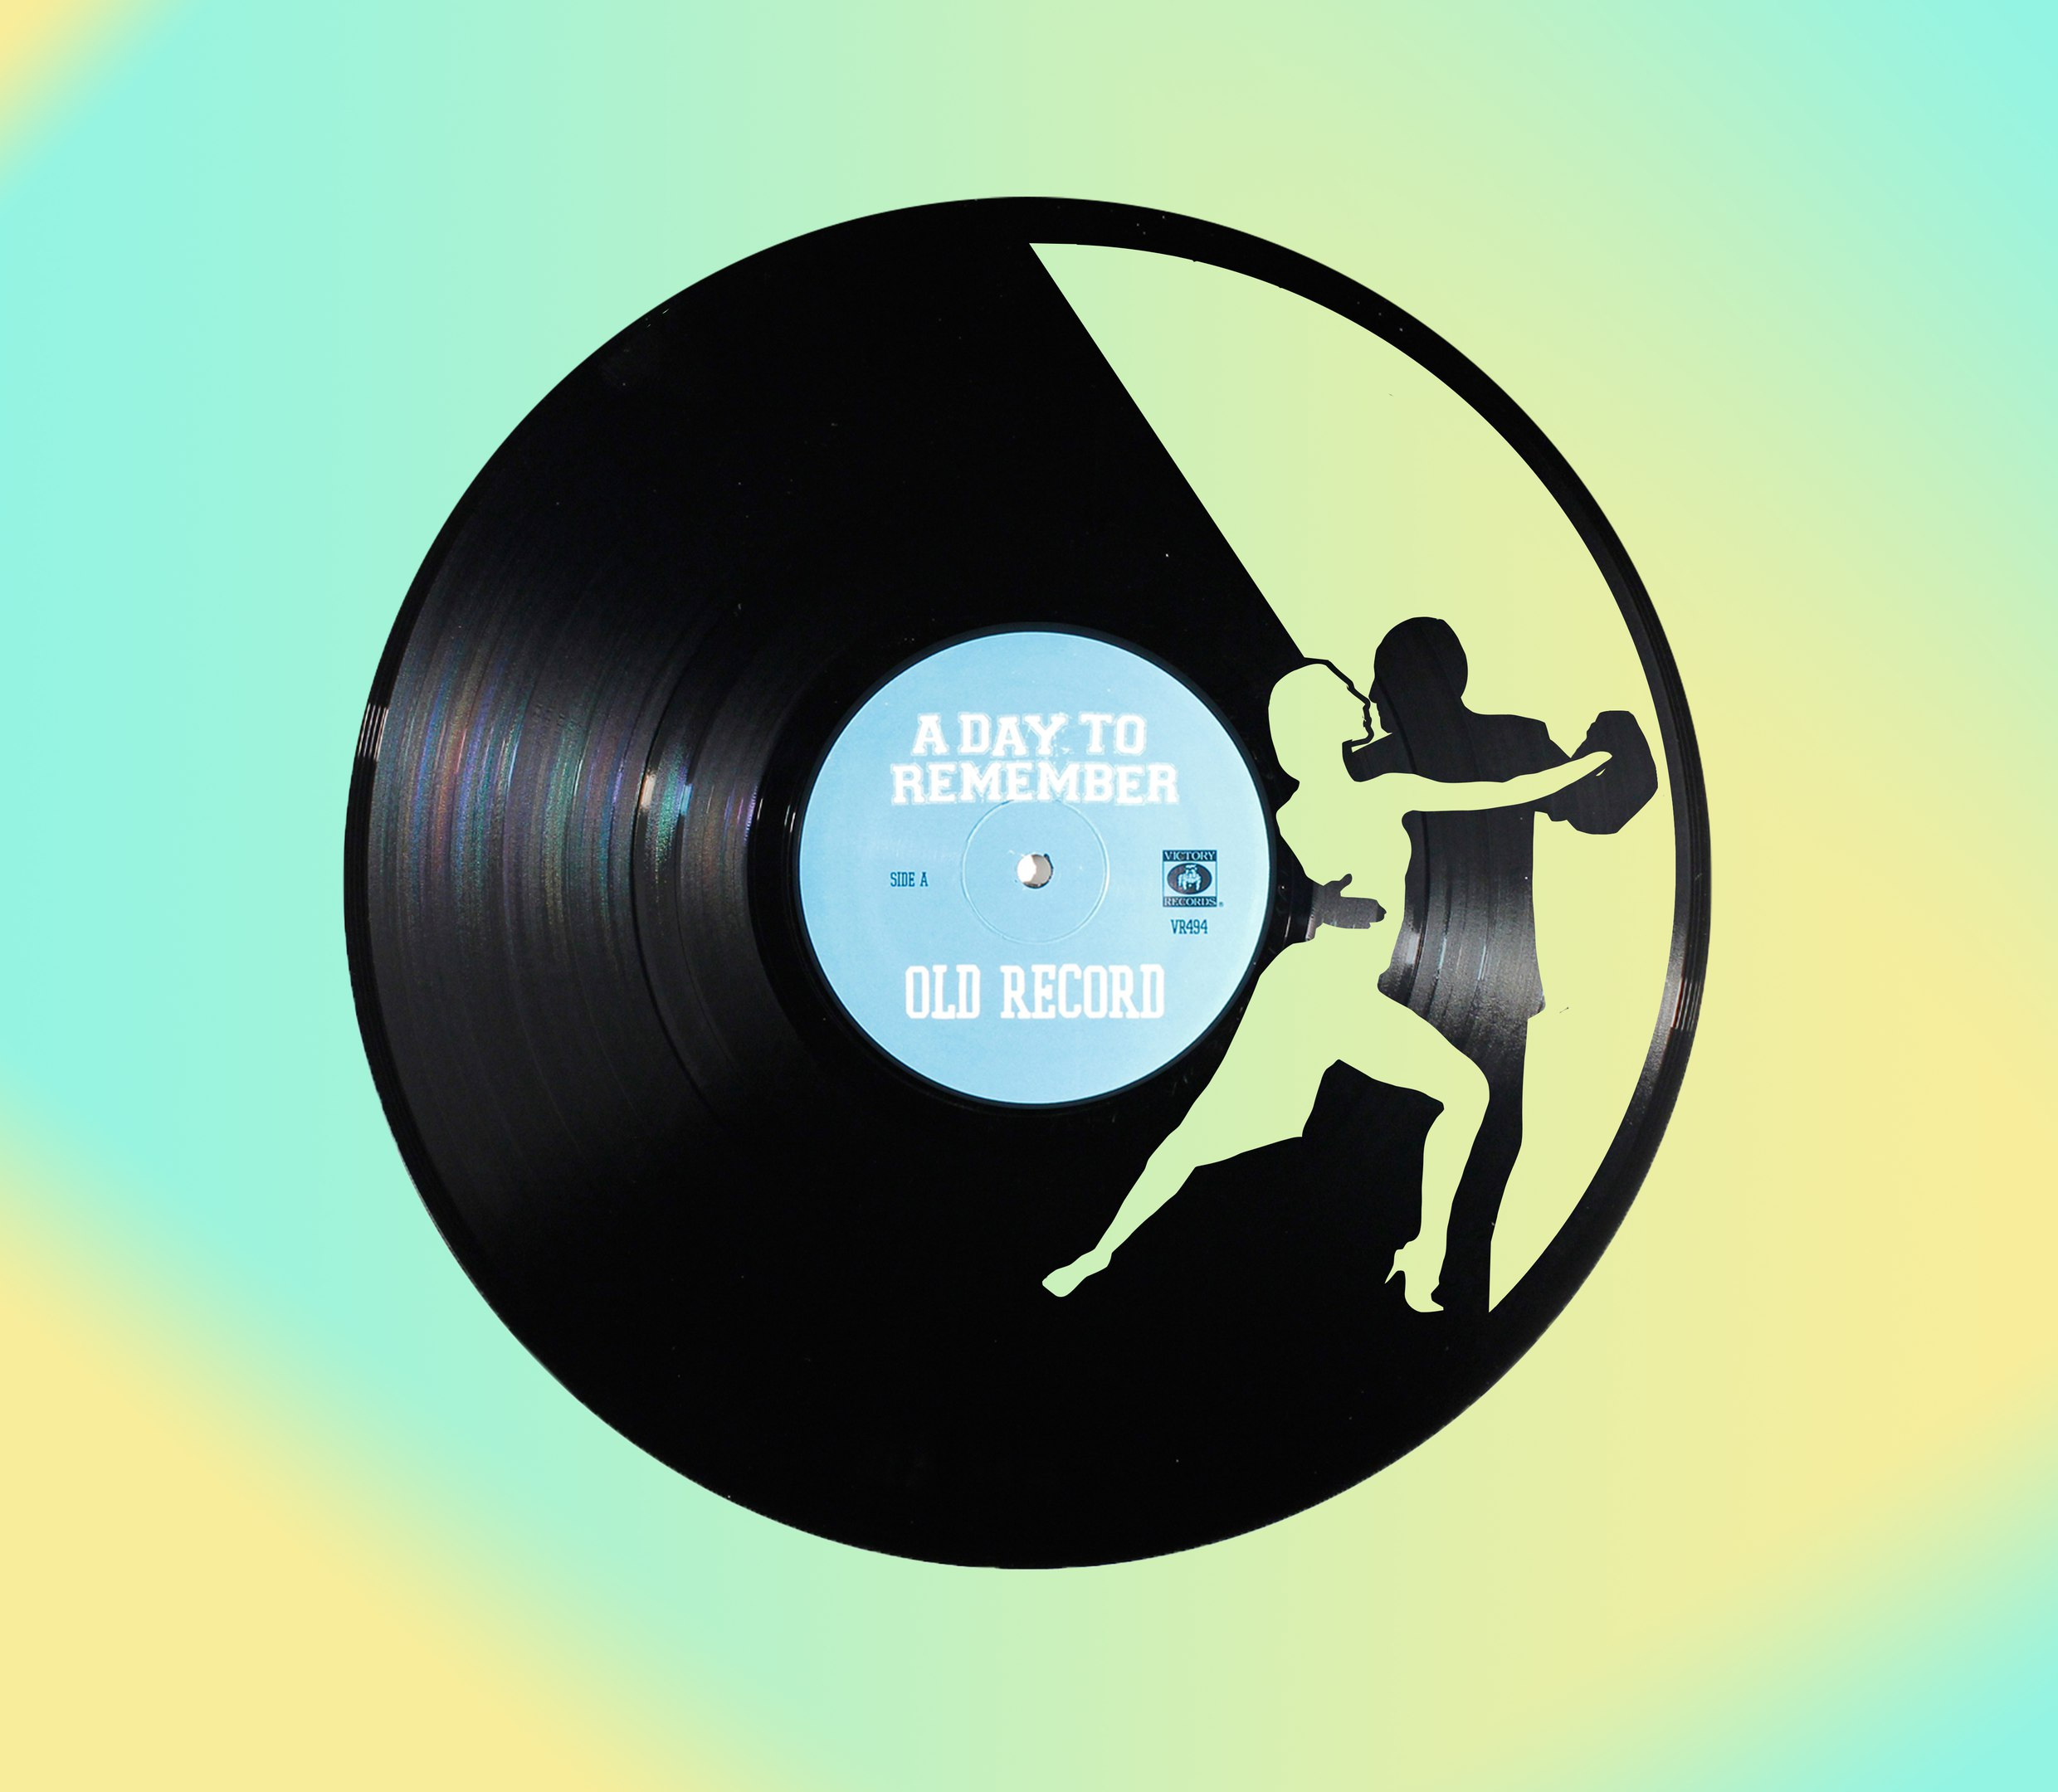 Laser Cut Dancing Couple Vinyl Clock Free Vector